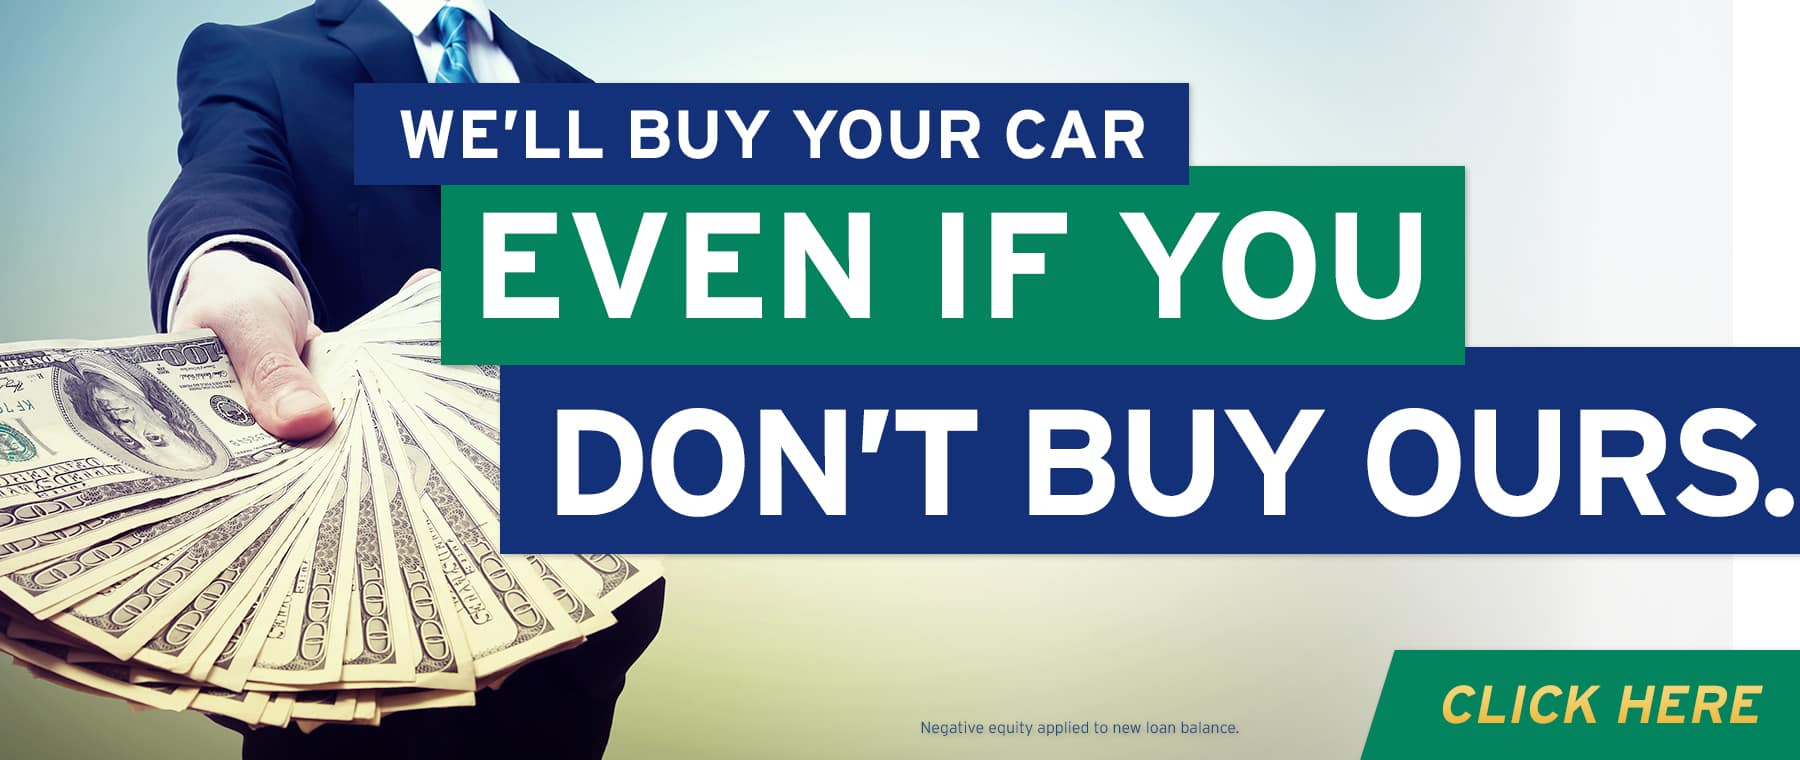 WE'LL BUY YOUR CAR EVEN IF YOU DON'T BUY FROM US